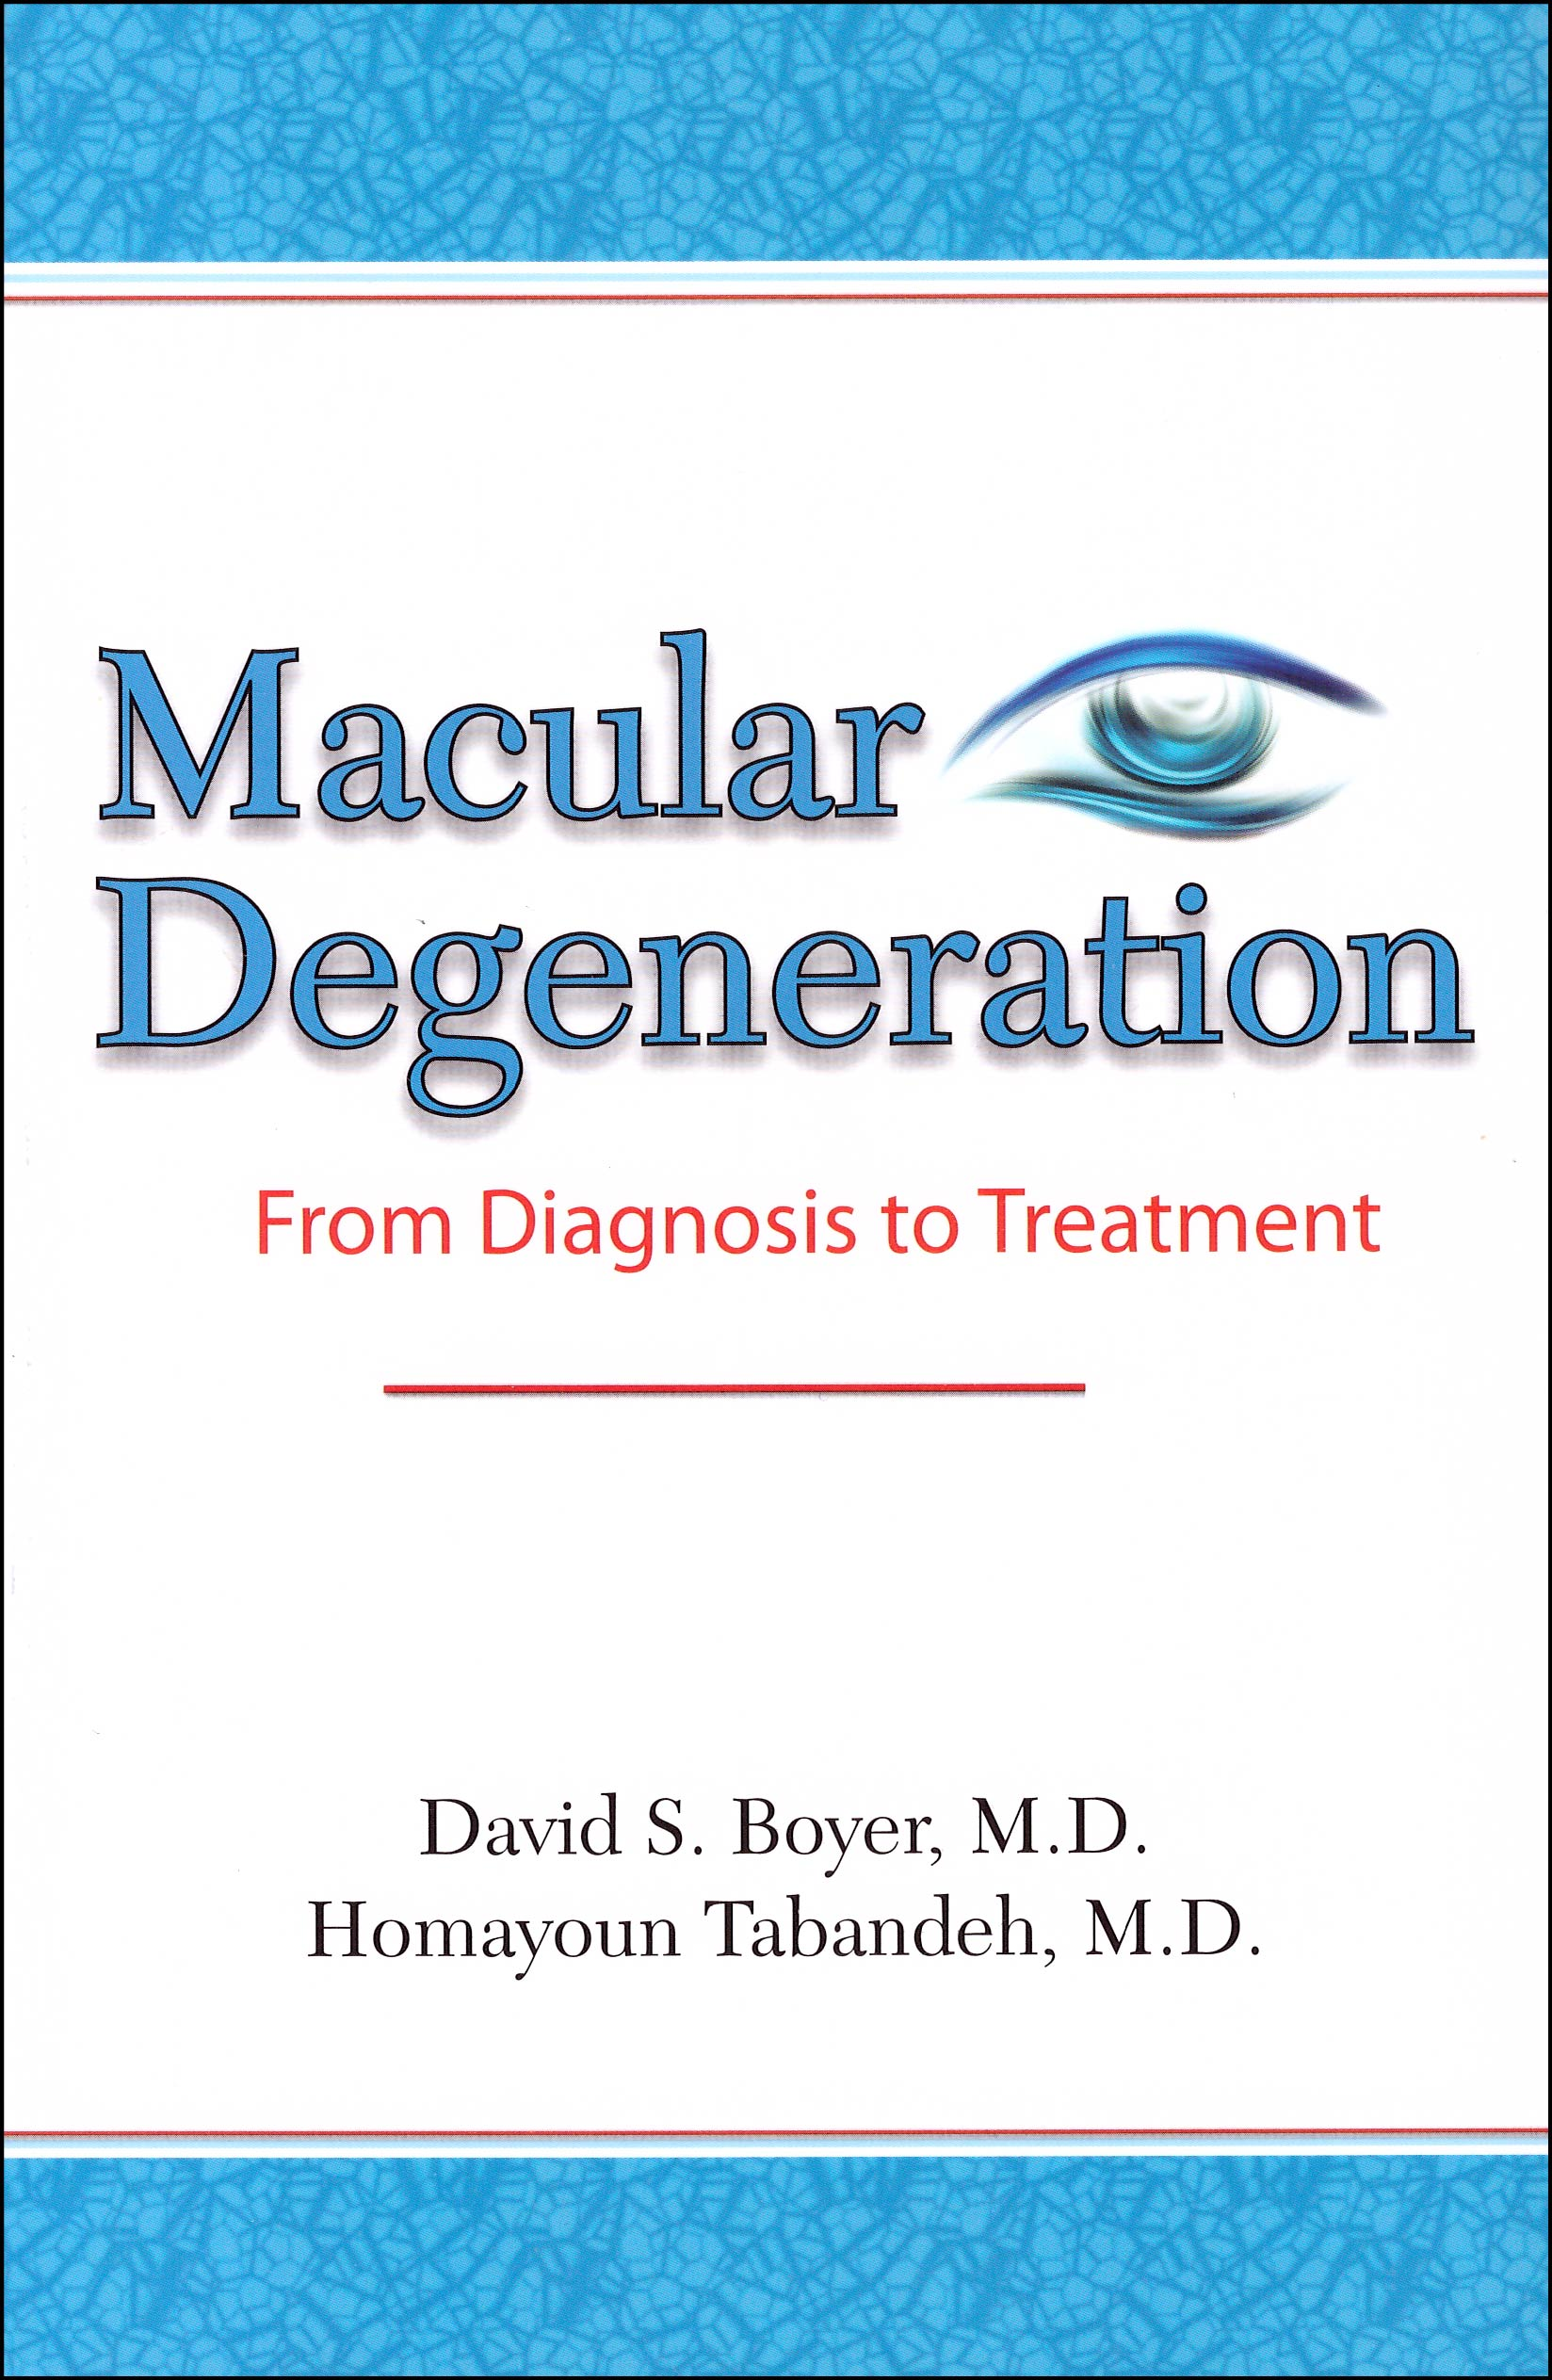 Macular Degeneration From Diagnosis to Treatment